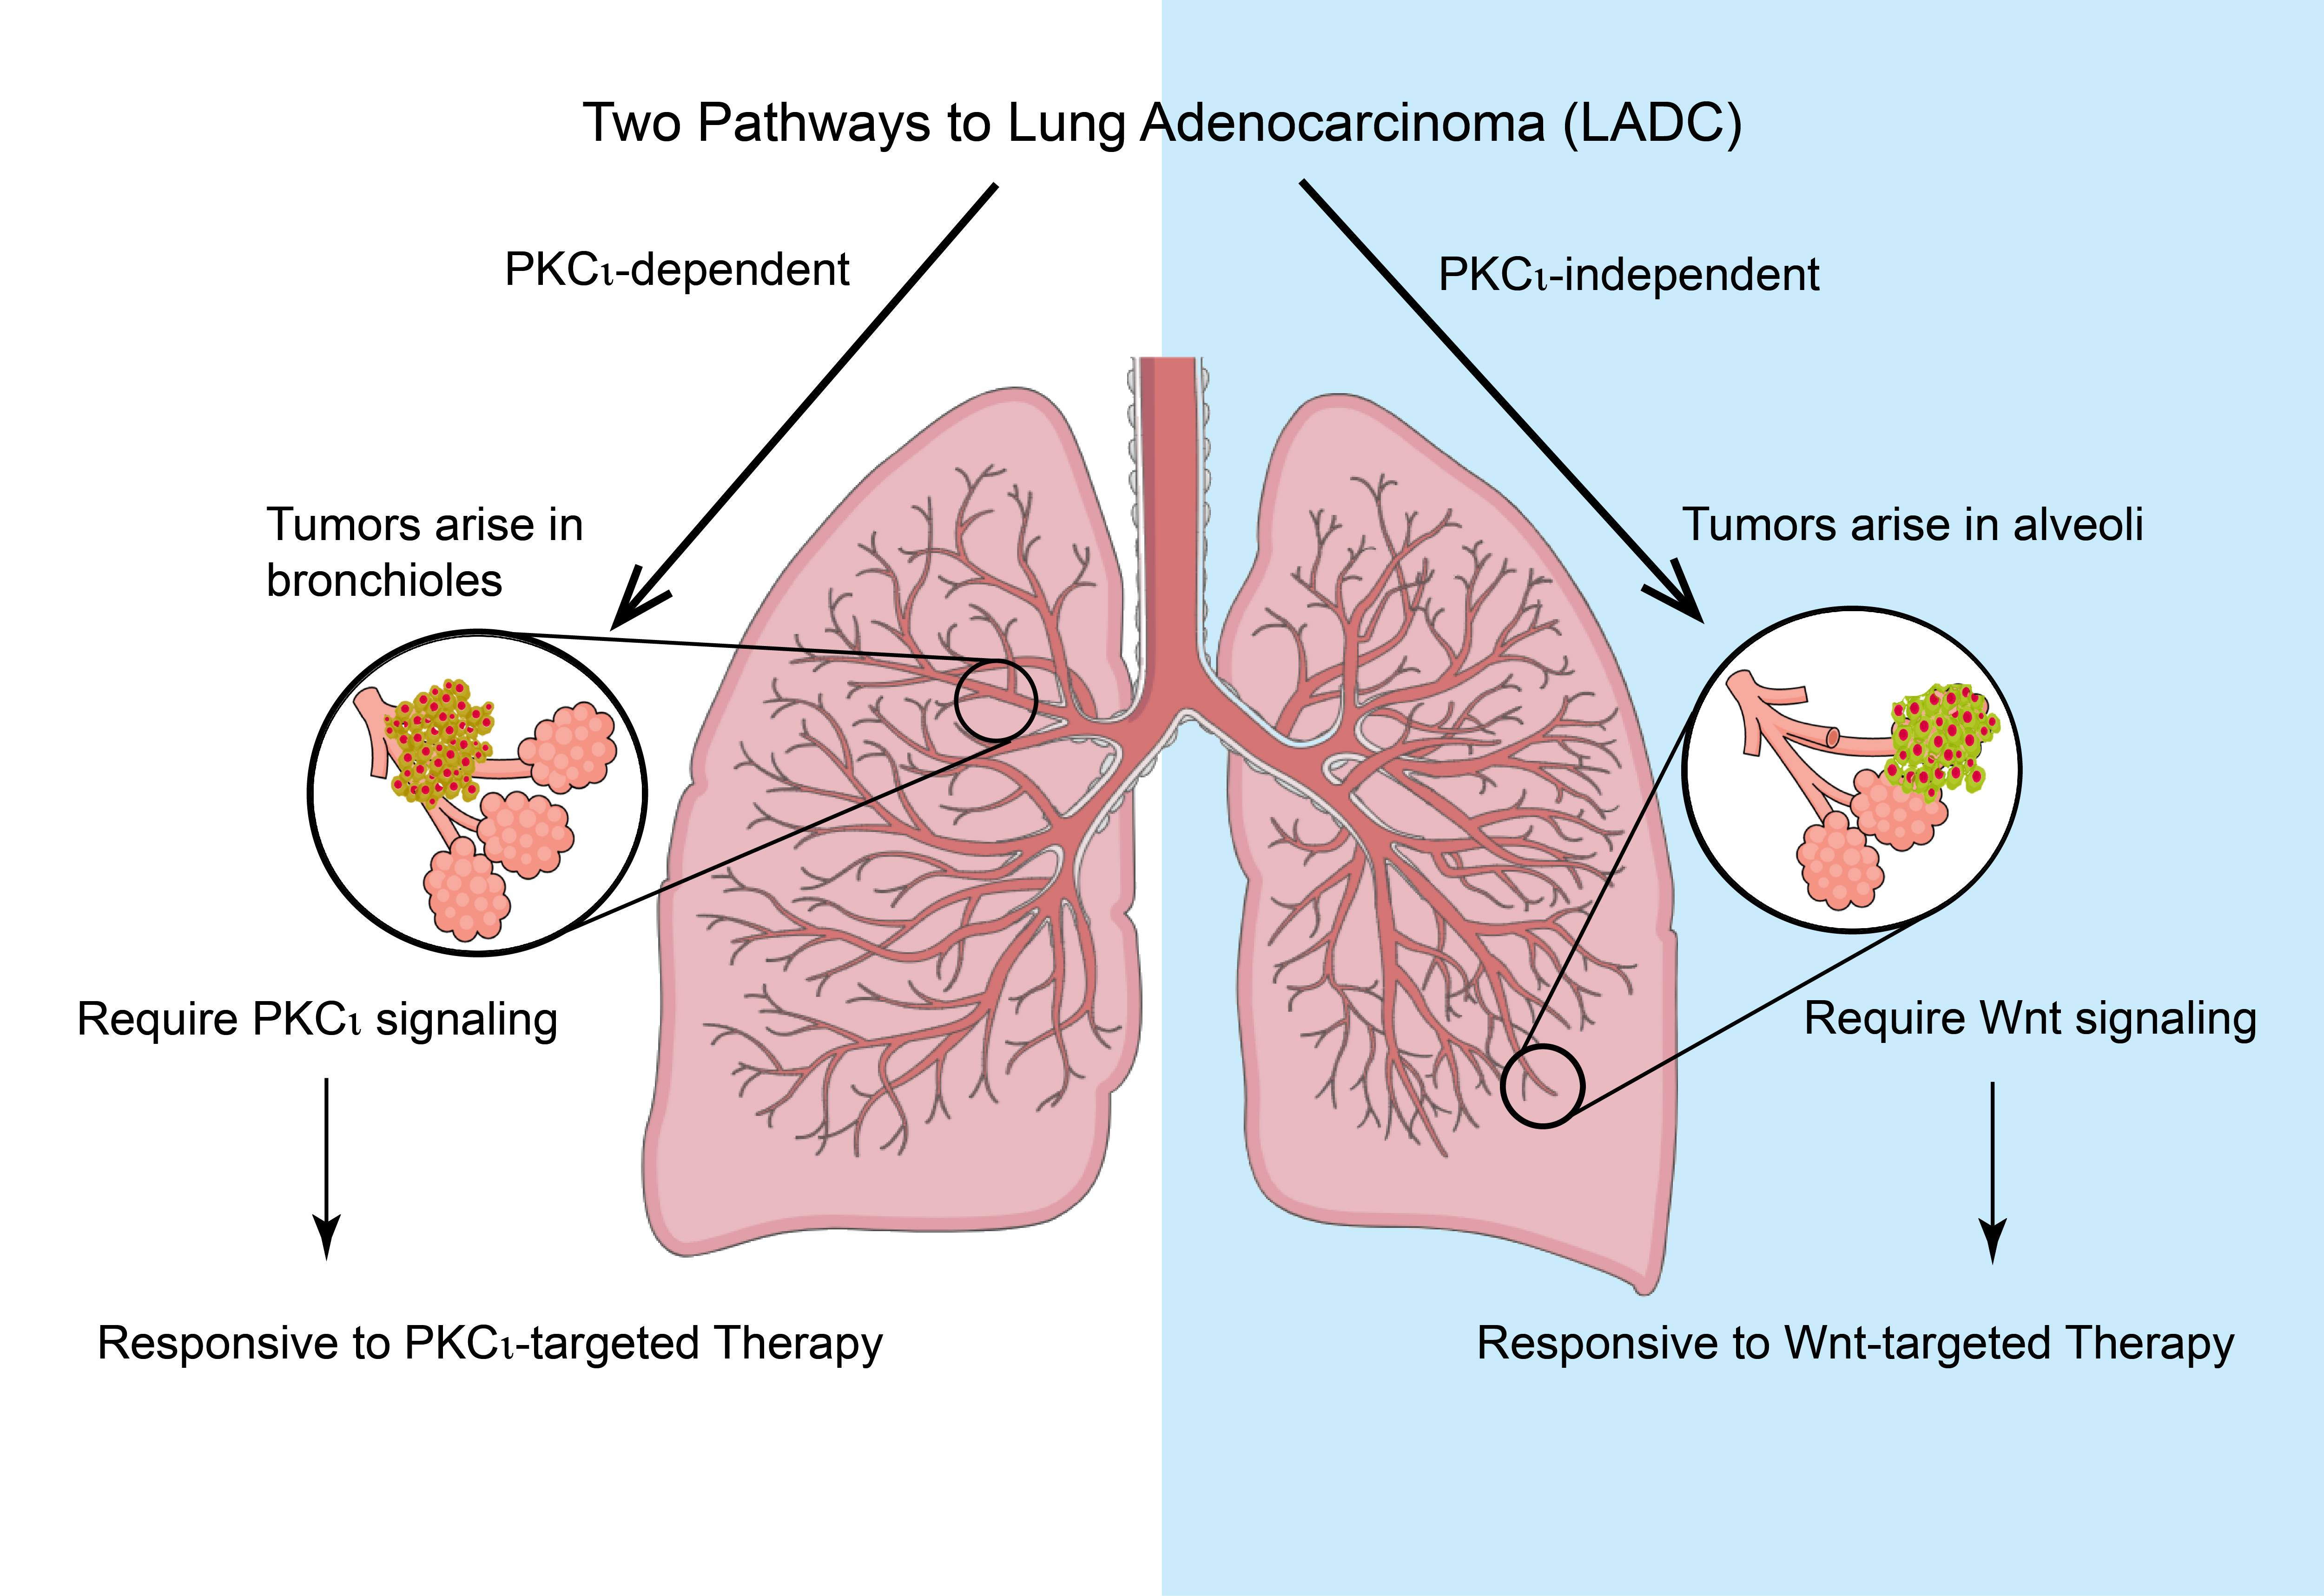 diagram of two pathways to lung adenocarcinoma